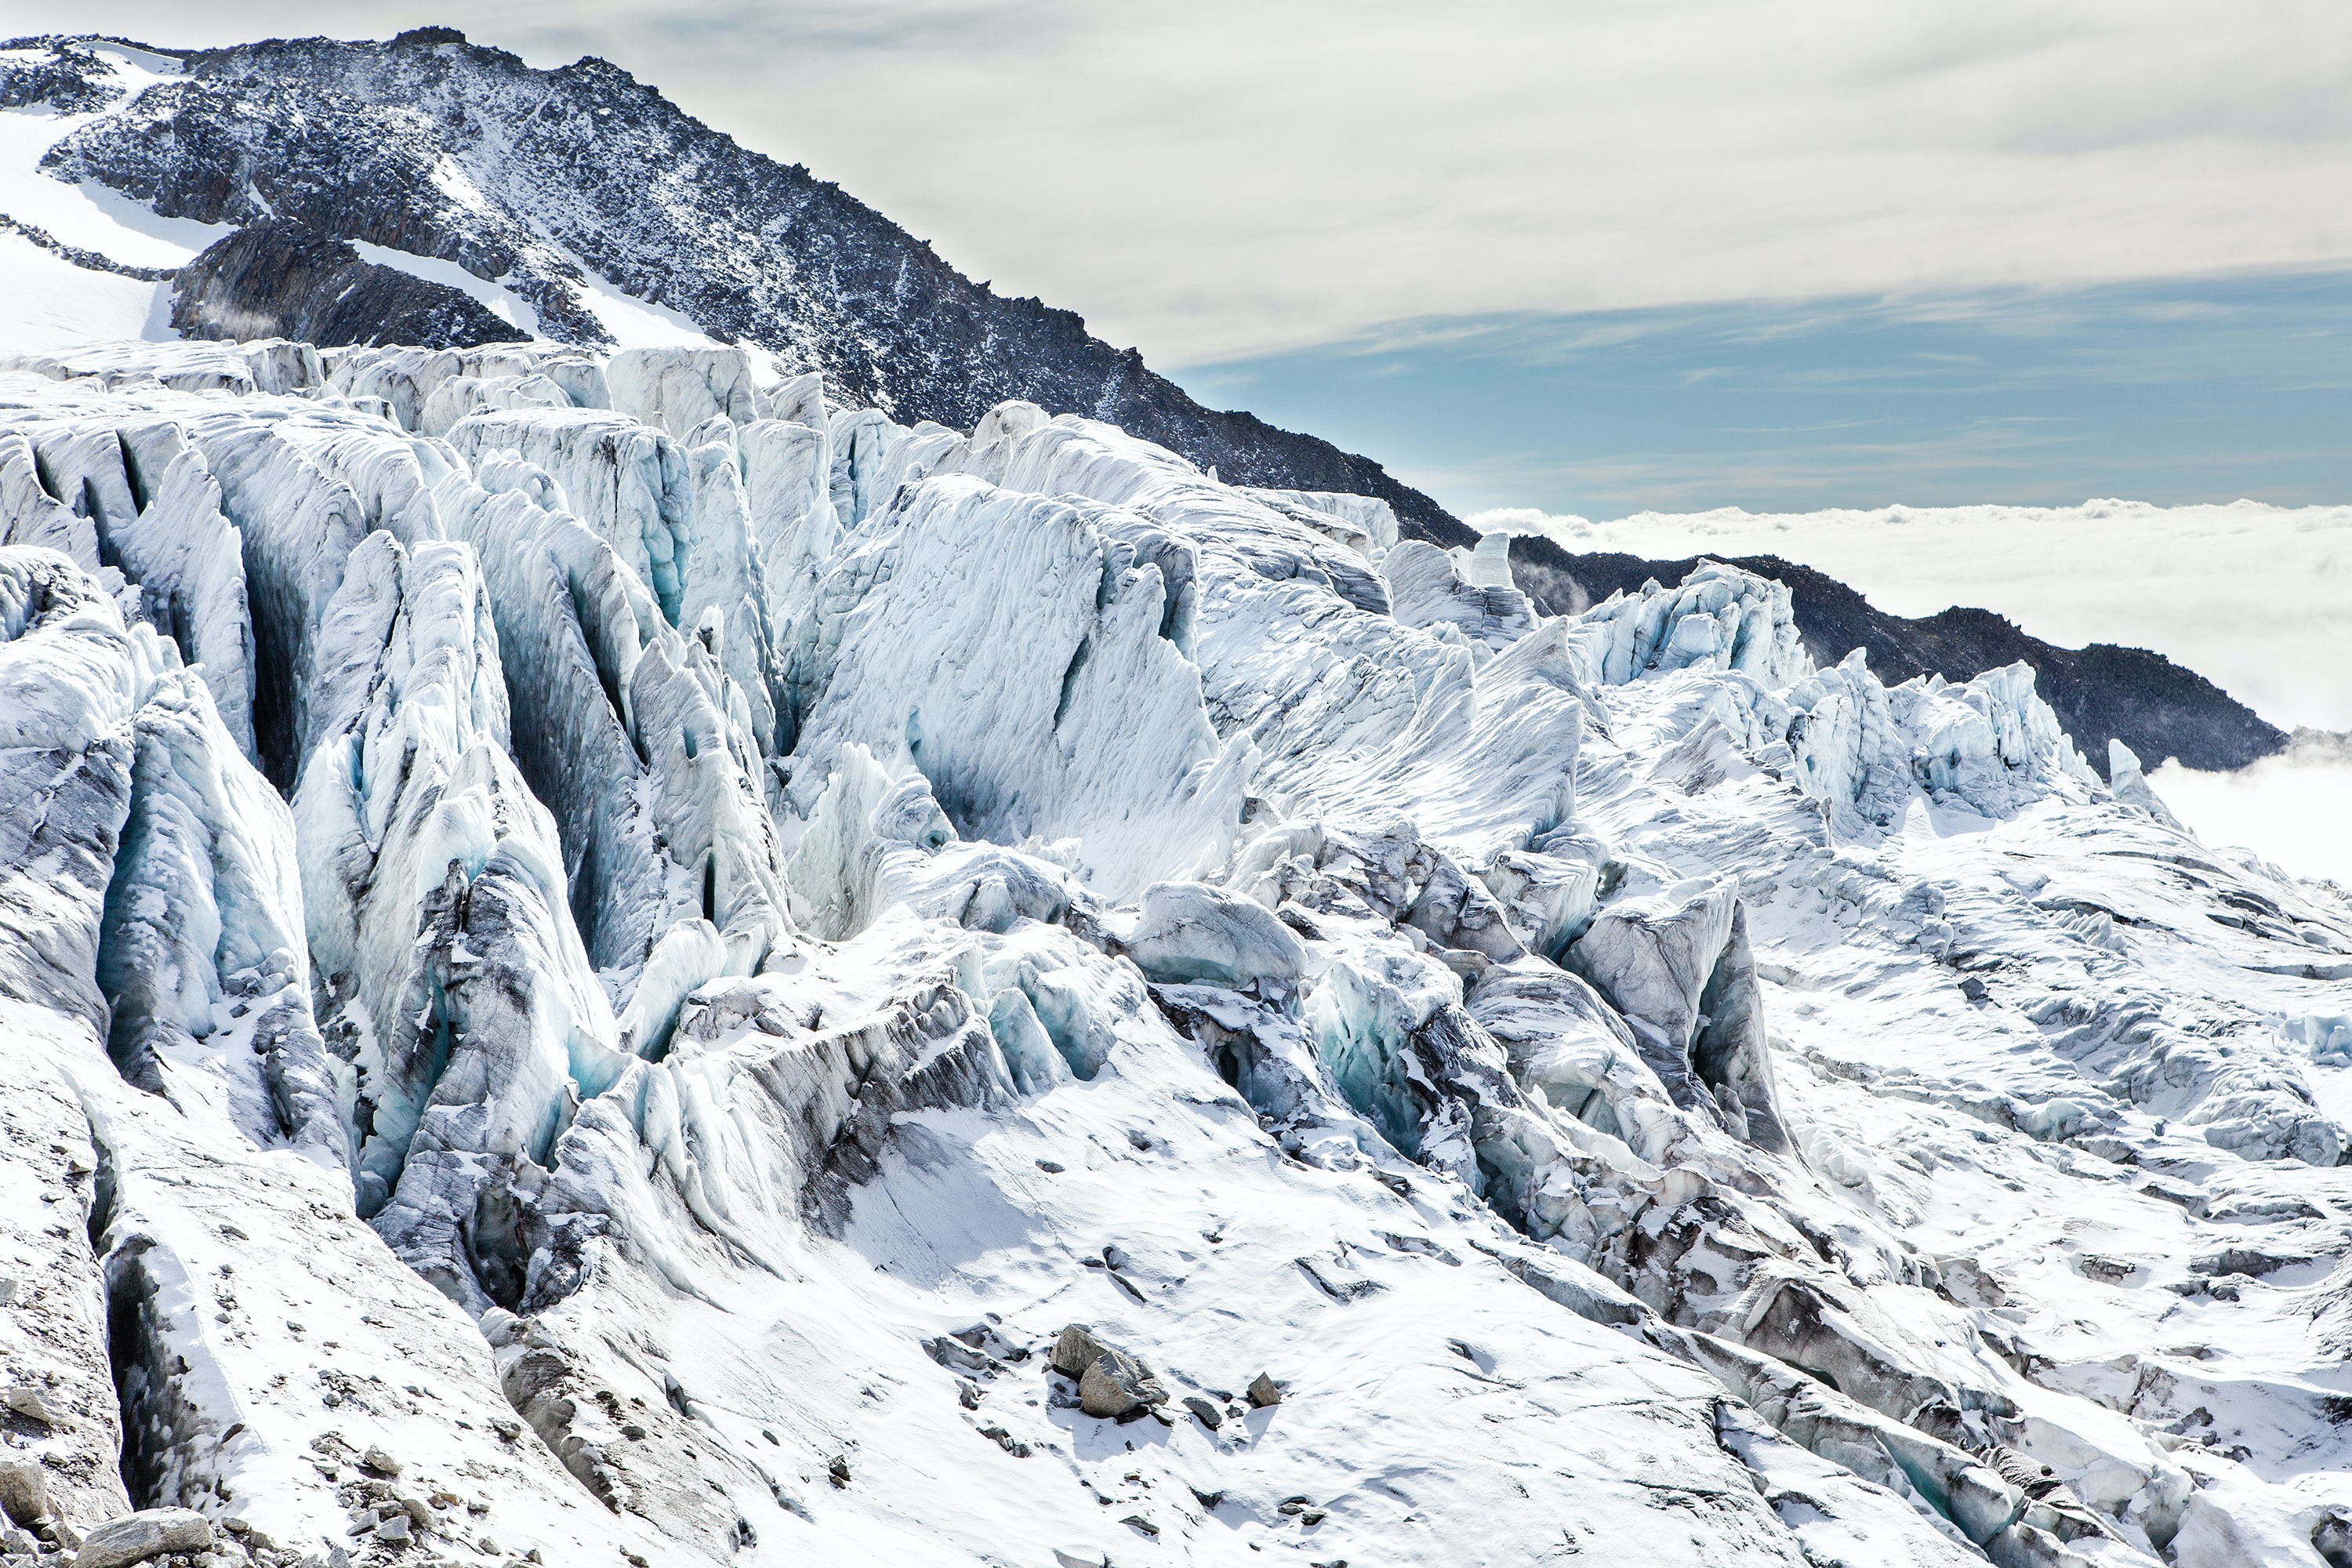 Snow and ice encapsulate and extremely rigid mountain